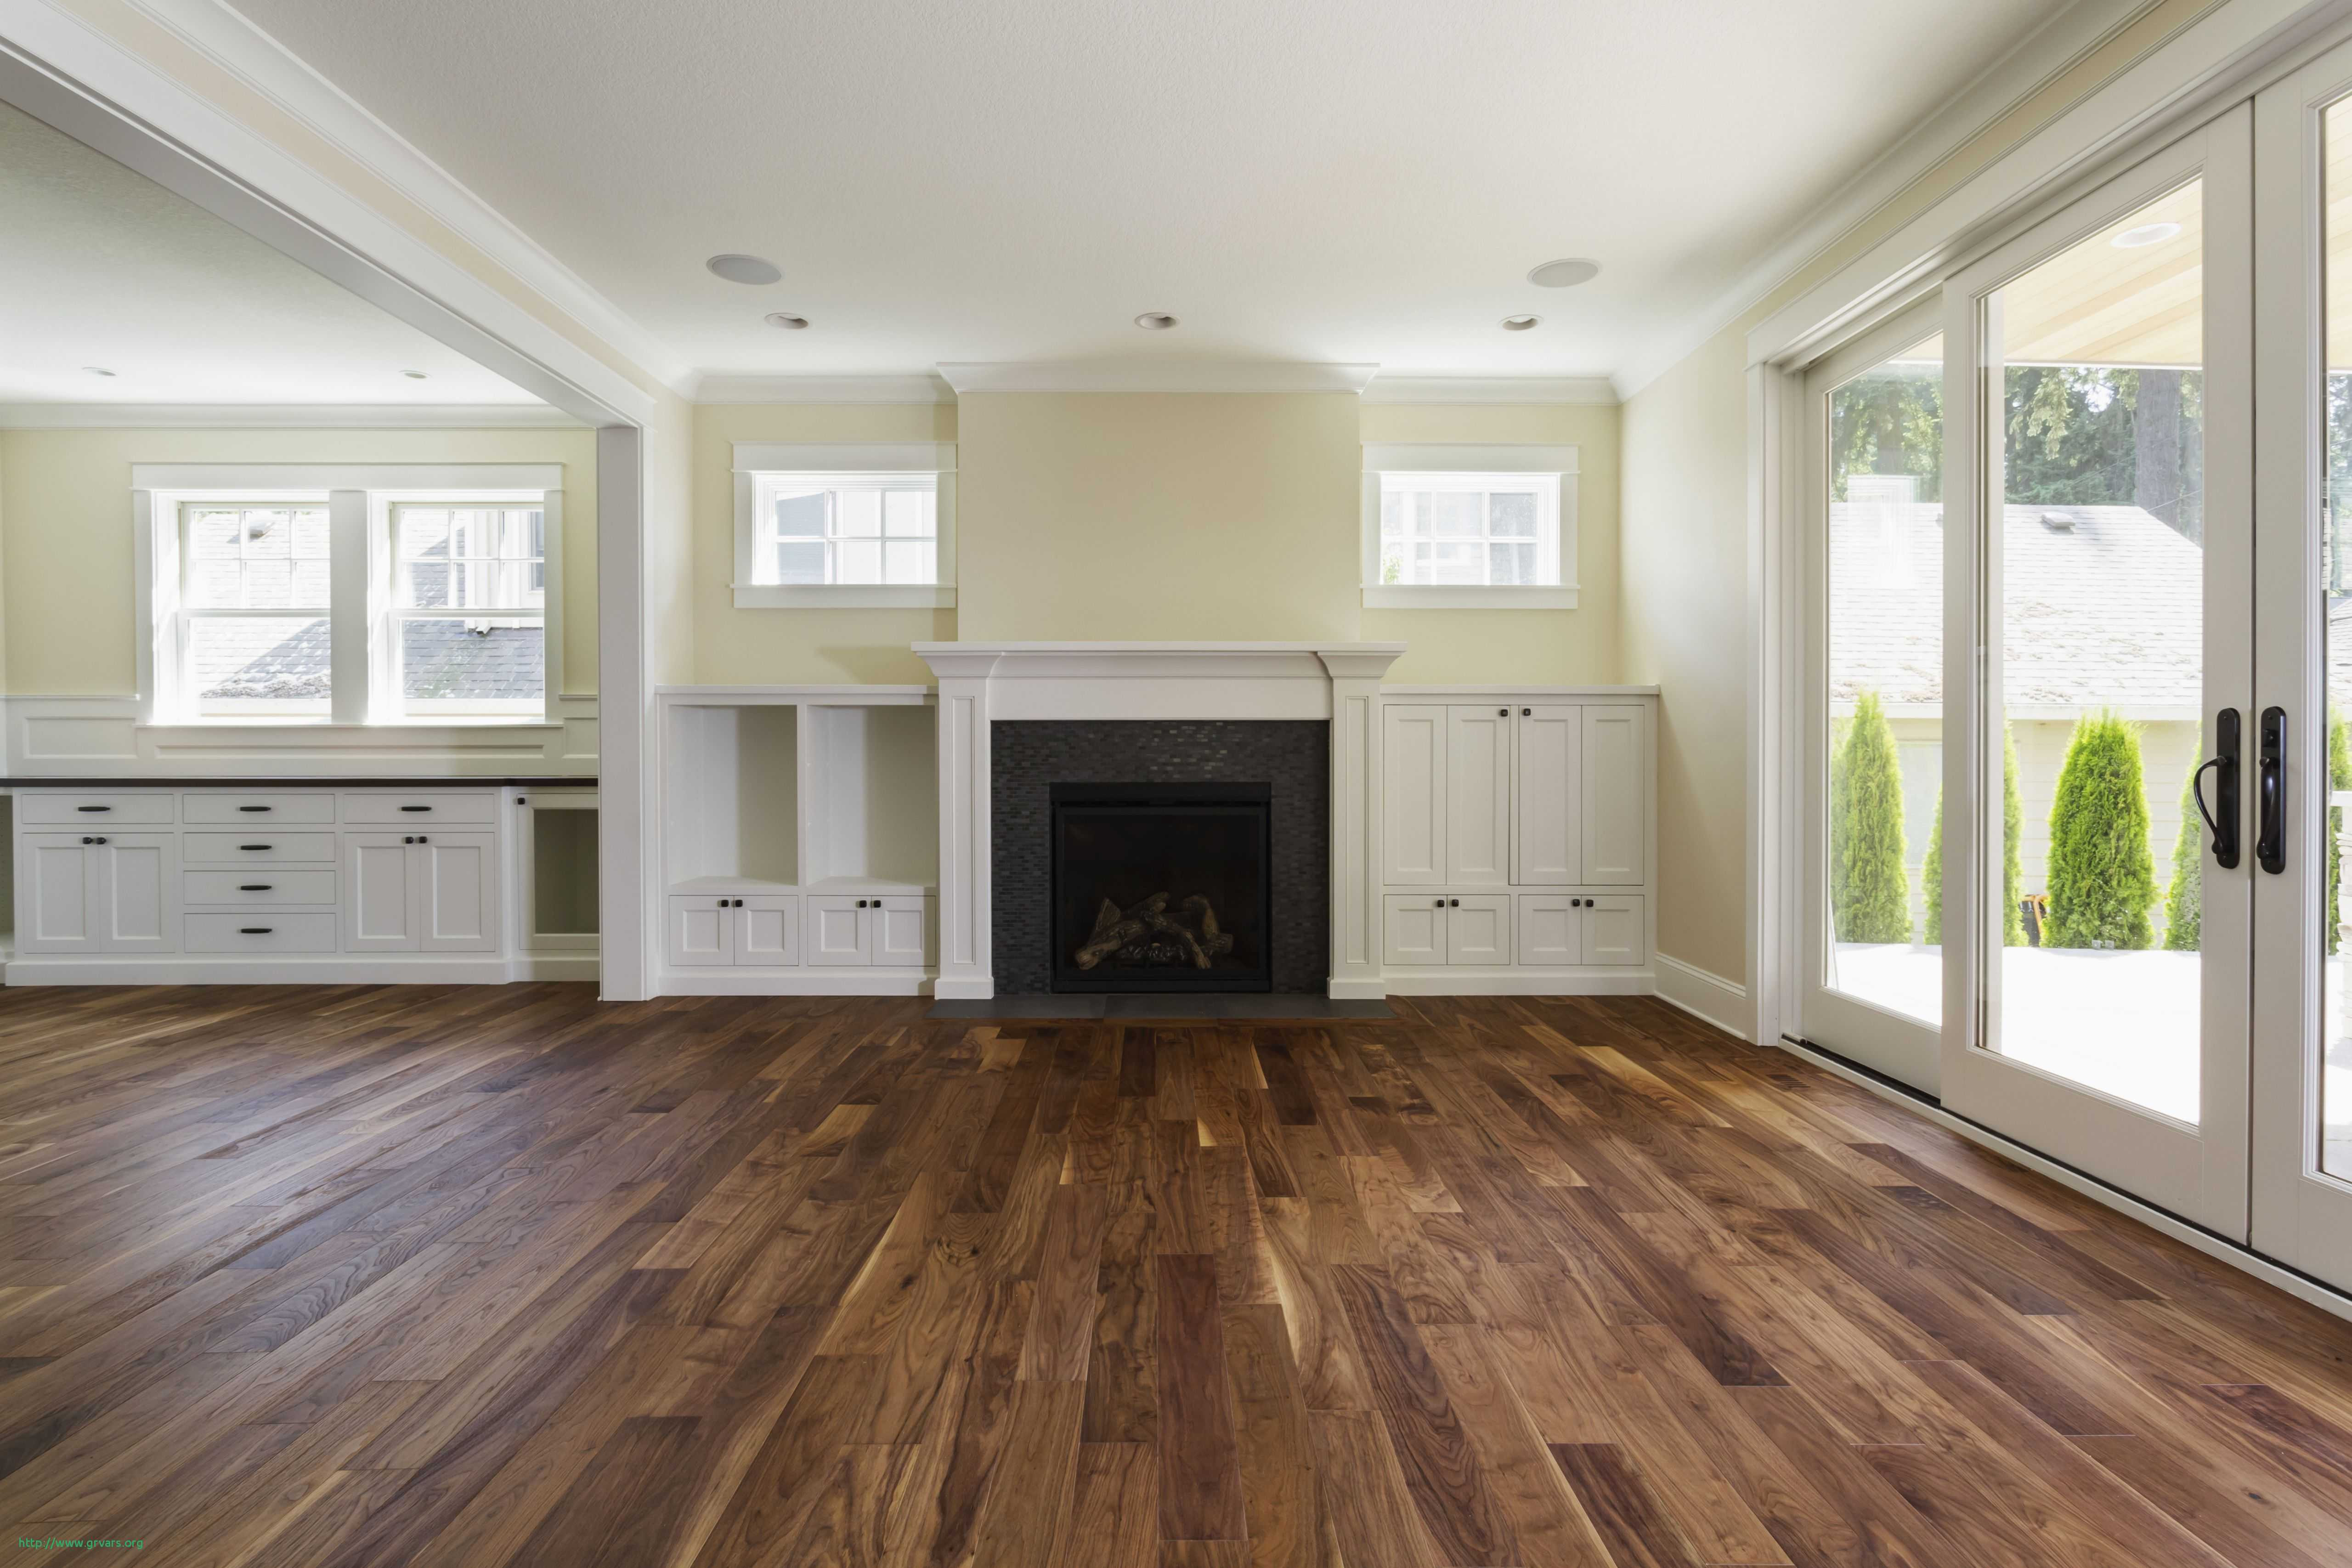 hardwood flooring minneapolis wholesale of 23 charmant cost to replace carpet with hardwood floors ideas blog throughout cost to replace carpet with hardwood floors a‰lagant the pros and cons of prefinished hardwood flooring